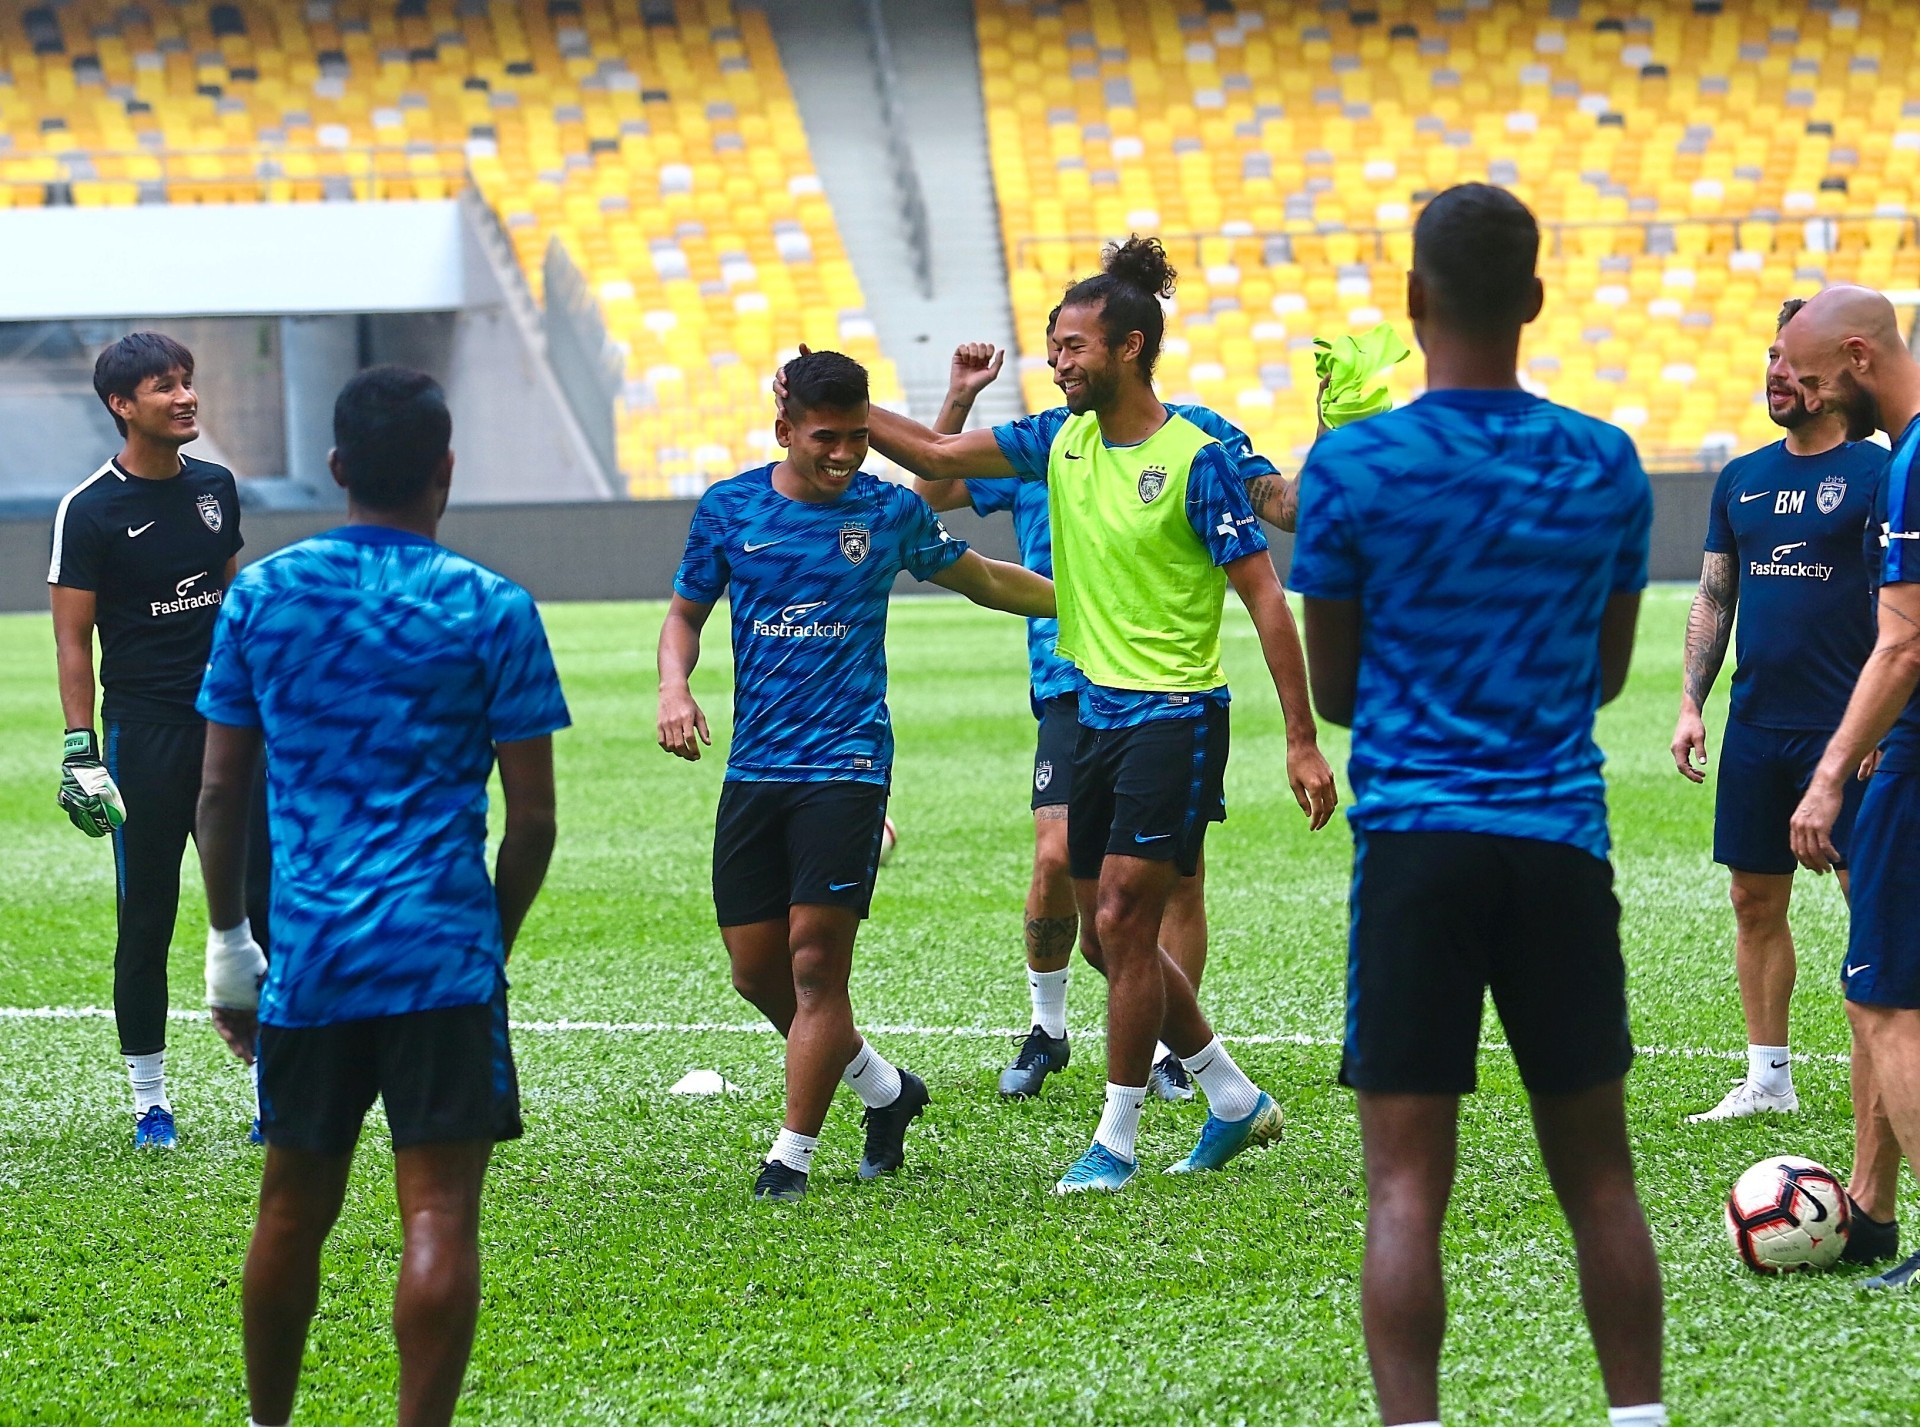 No stress: Johor Darul Ta'zim team players going through their drills during training yesterday. — FAIHAN GHANI / The Star